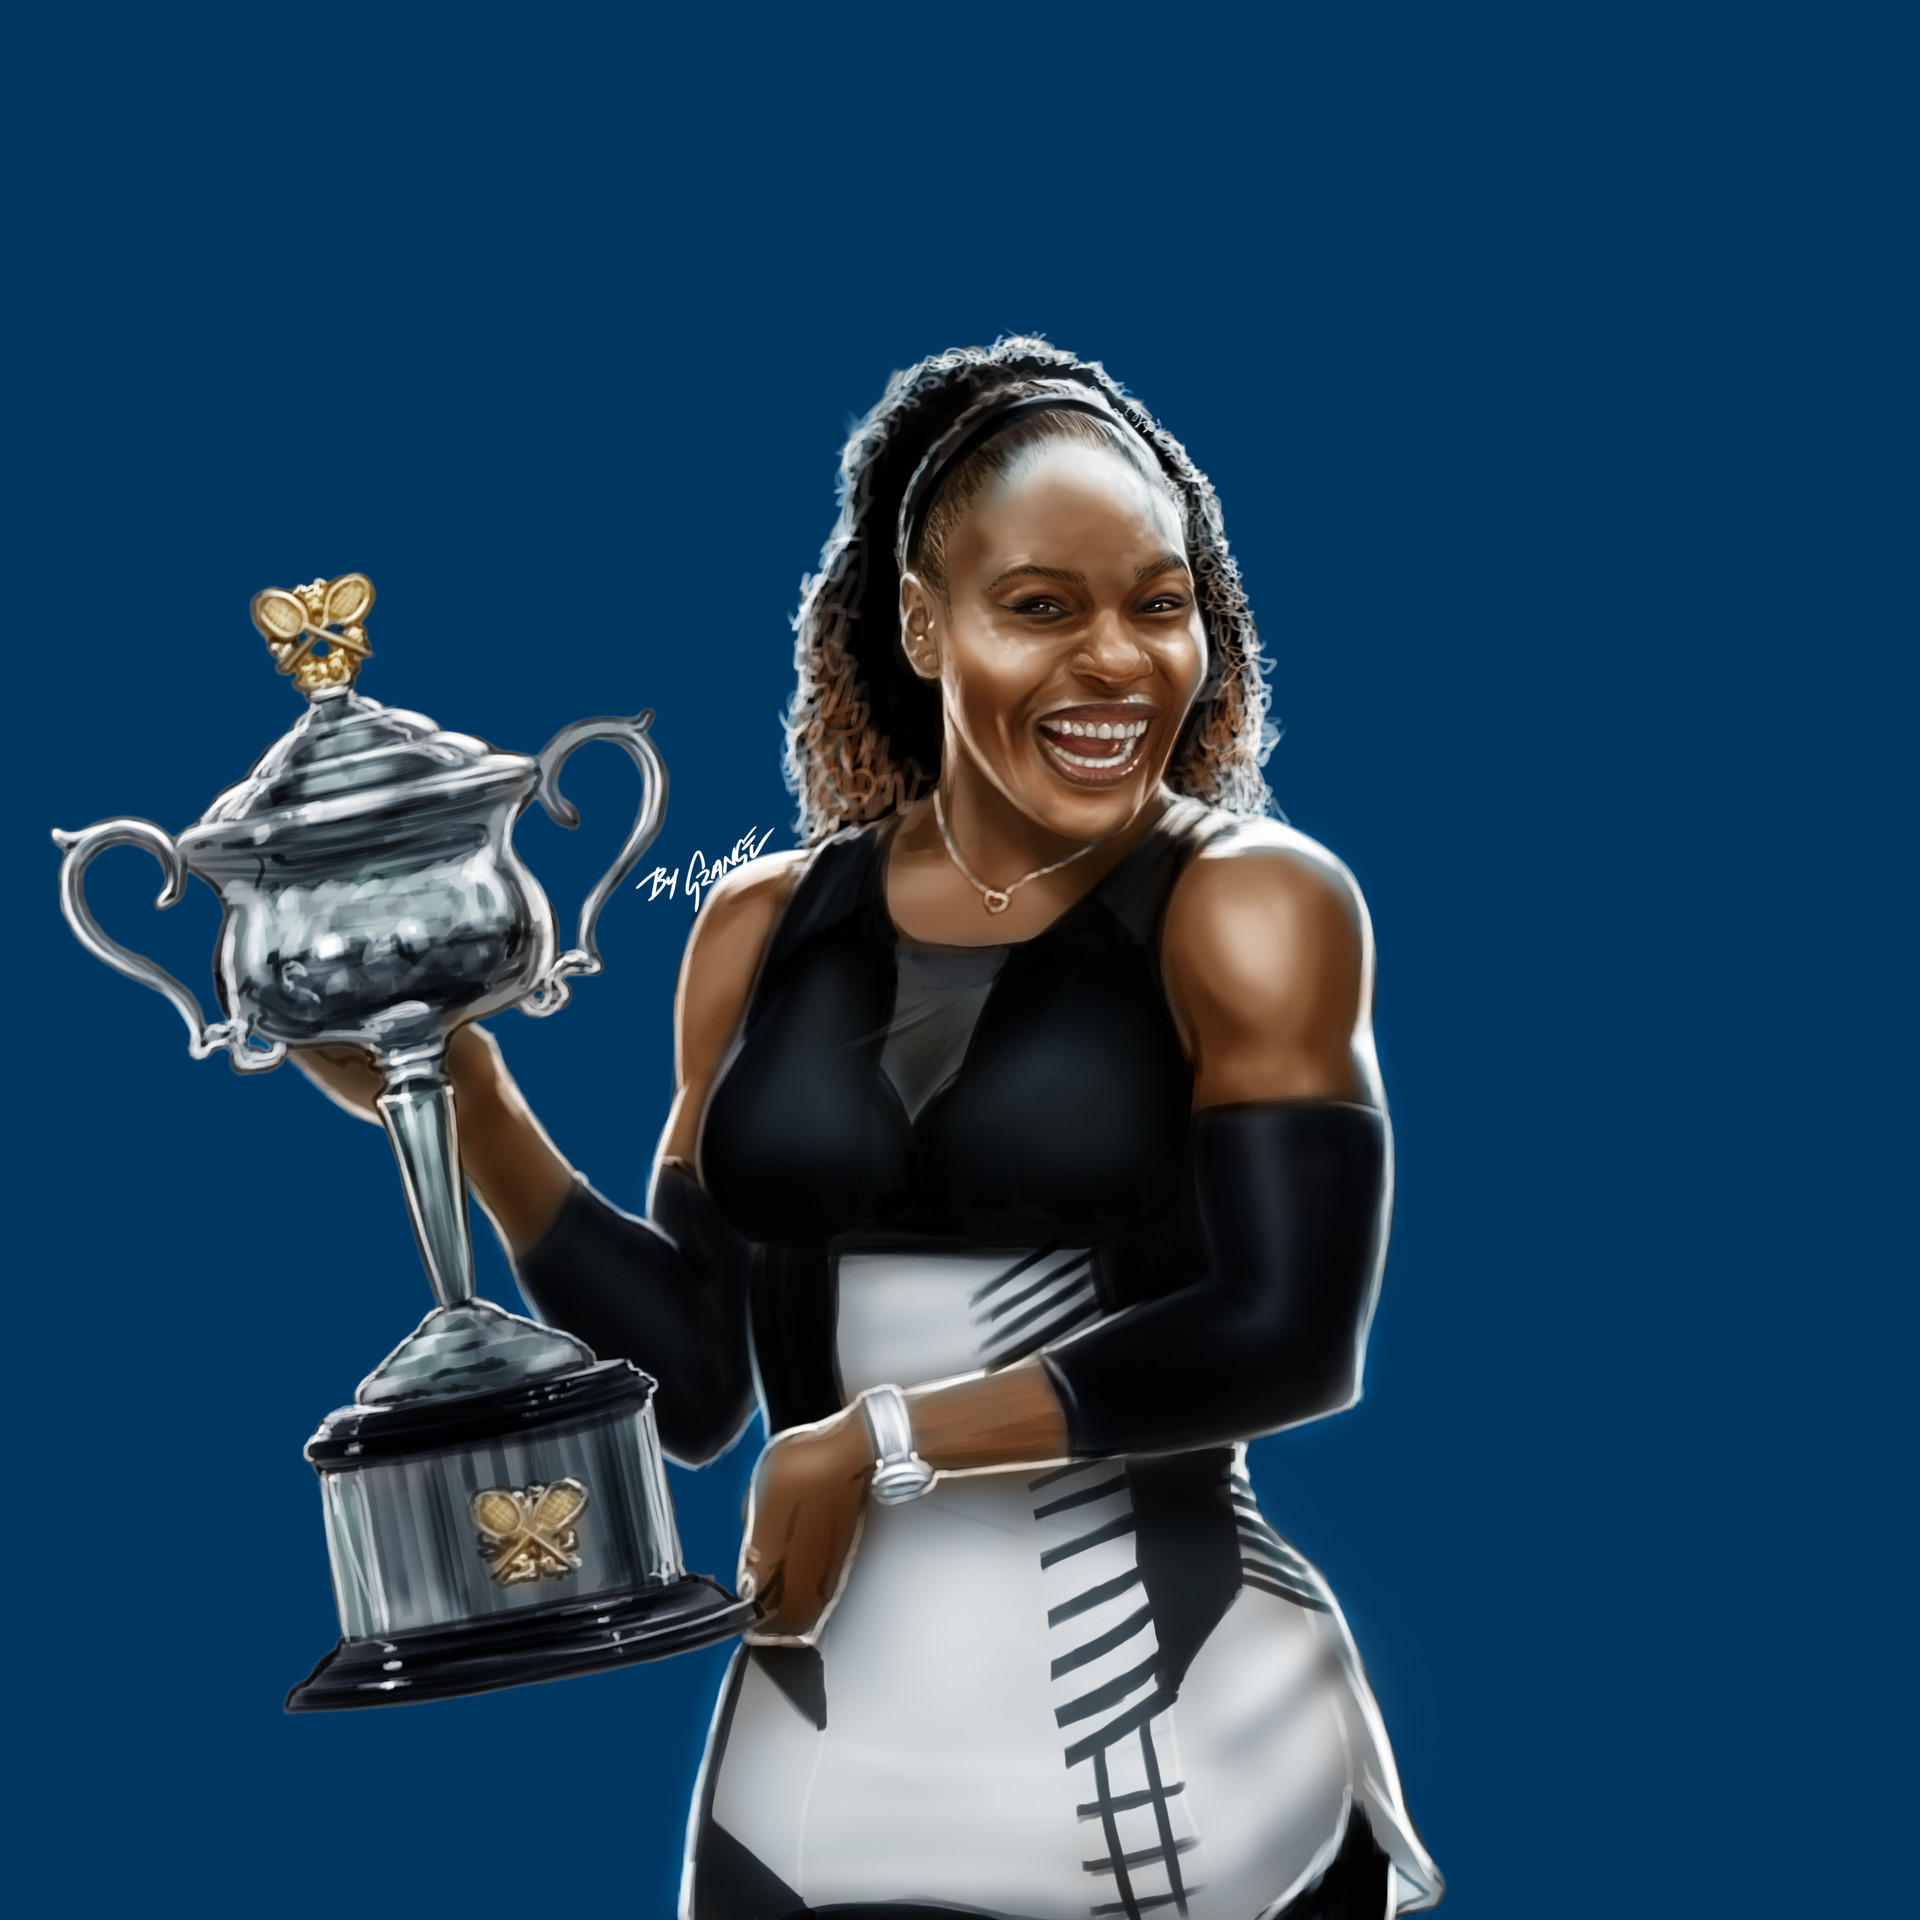 Grange wallis serena williams winner